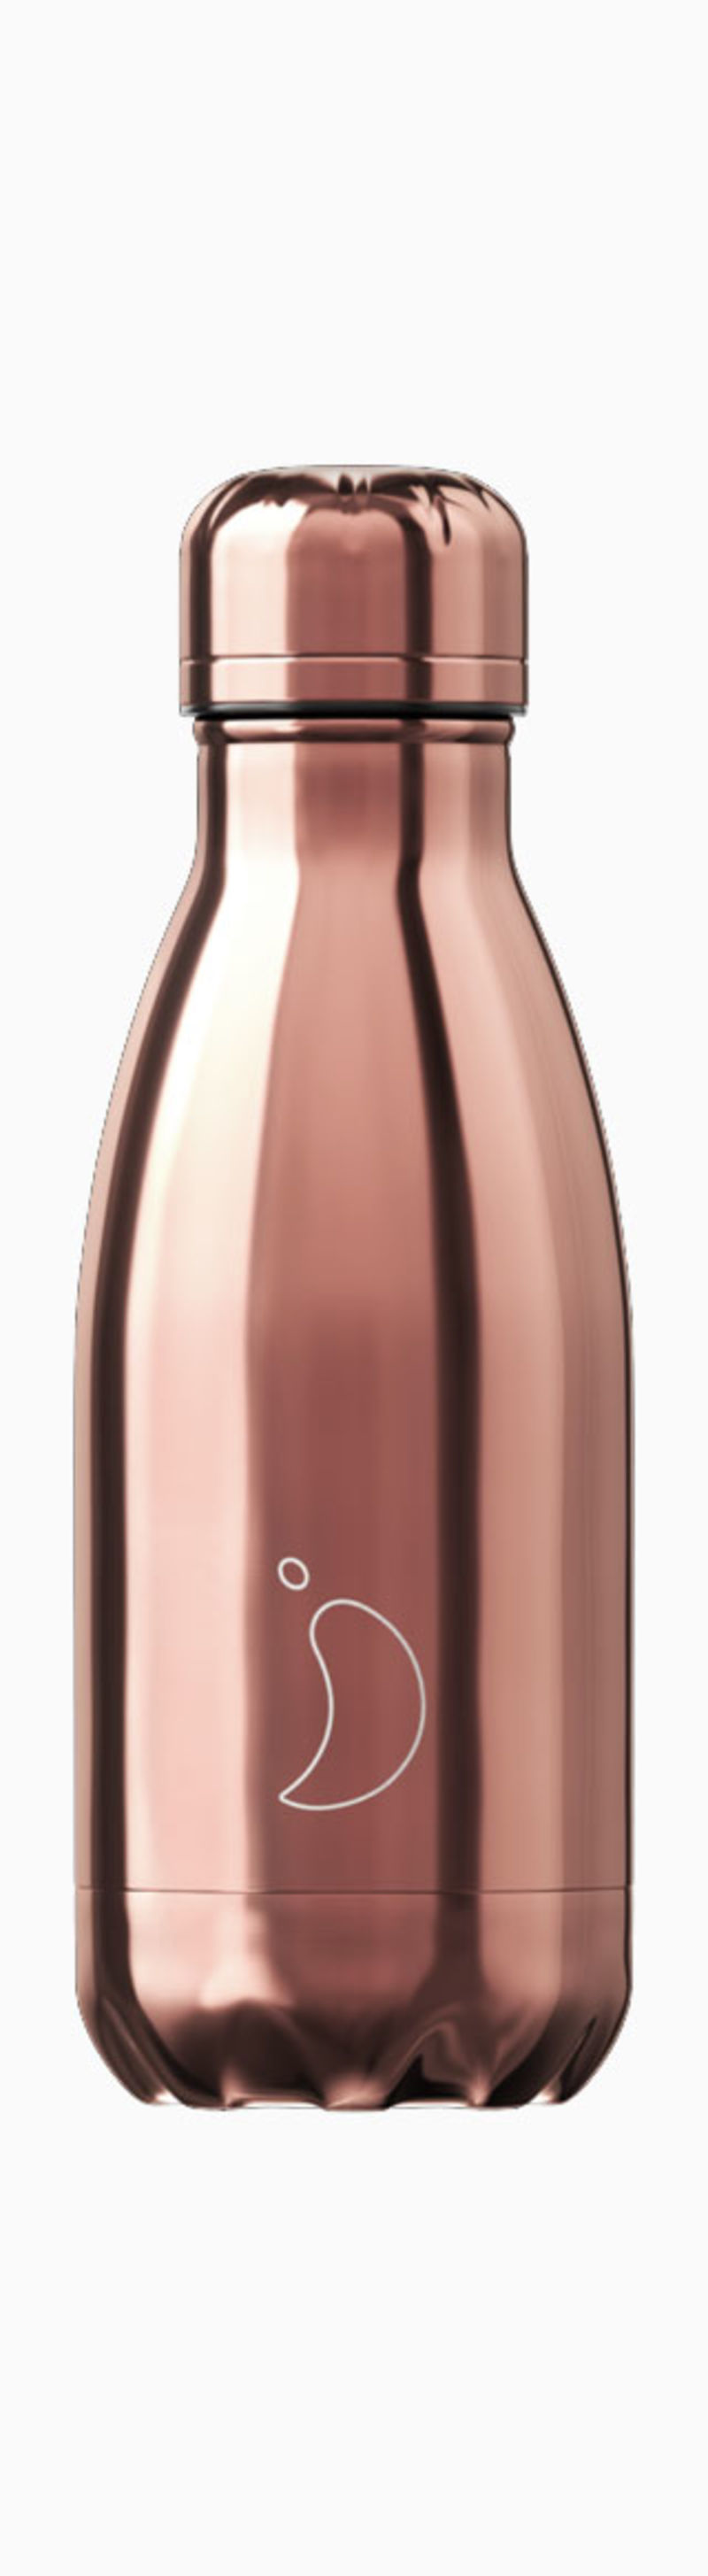 BOTELLA INOX TROPICAL ORO ROSA 260ML